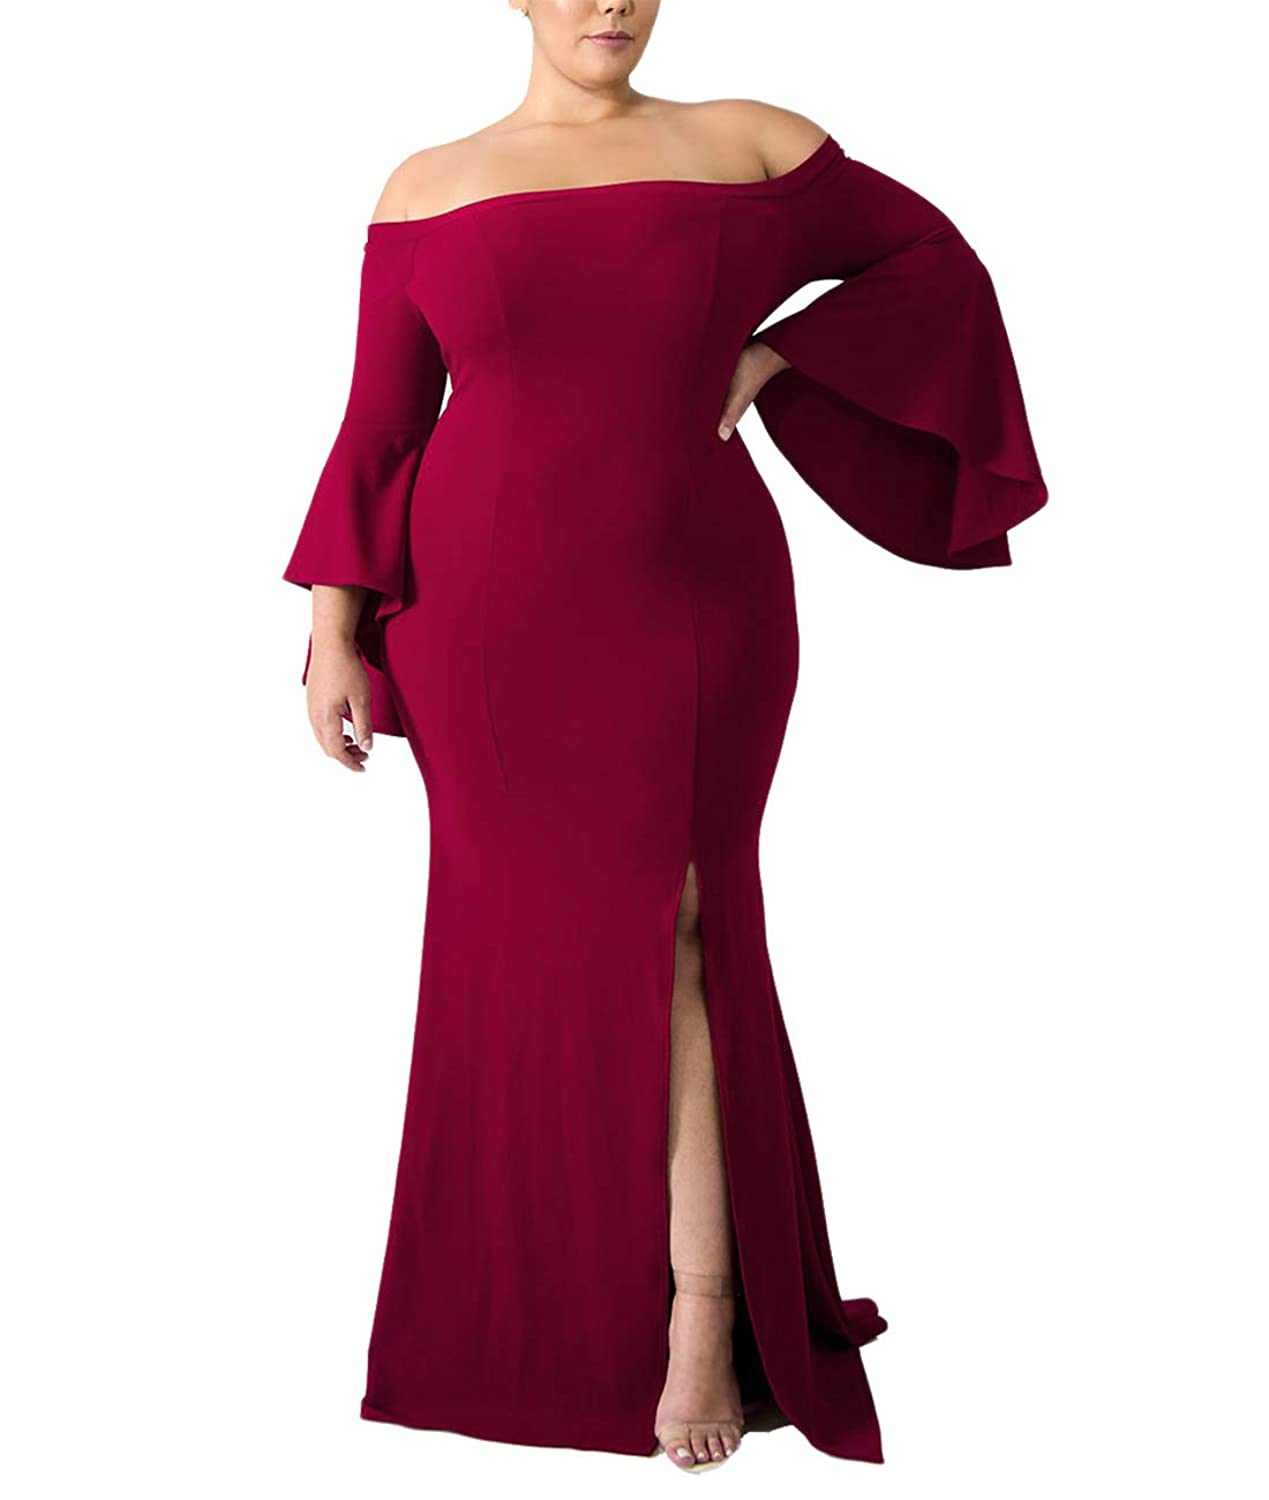 59c7f9f731 ... unique beauty, whose products include Fashion Dress, Sexy Lingerie,  Sweater etc. Share beauty and fashion. ♤Plus Size Evening Gowns for Women  Formal